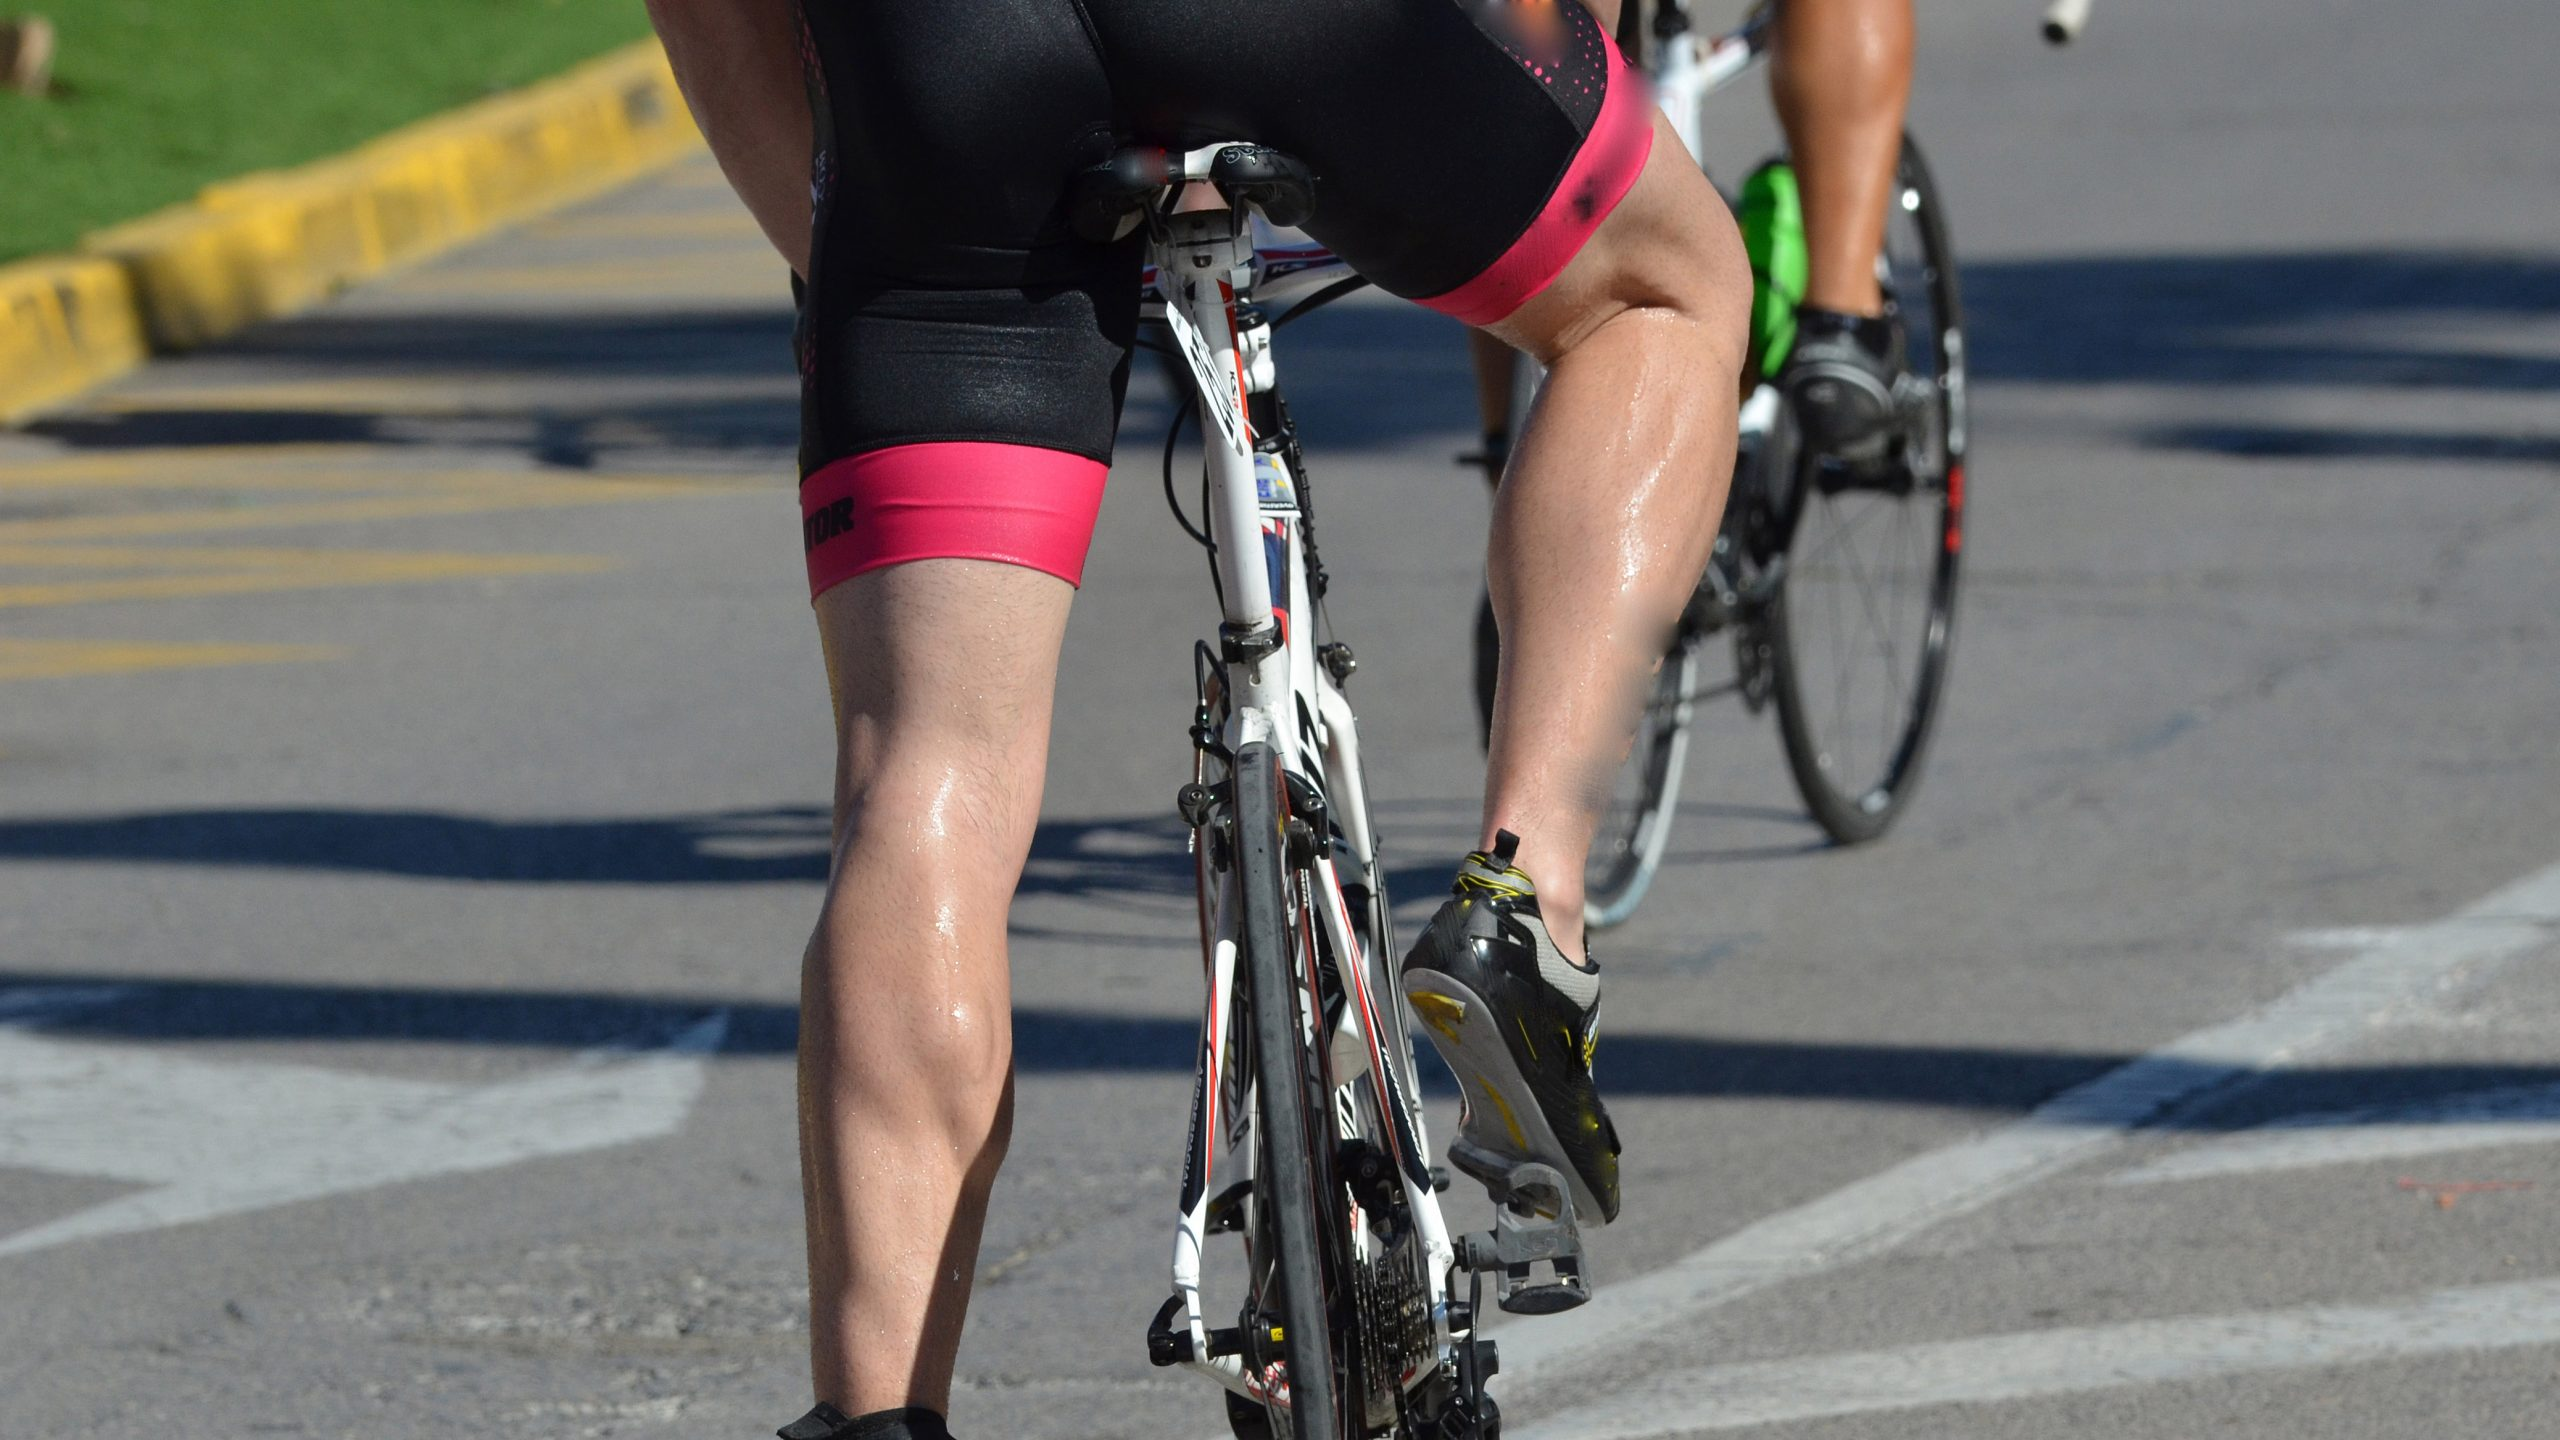 Cyclist Calves